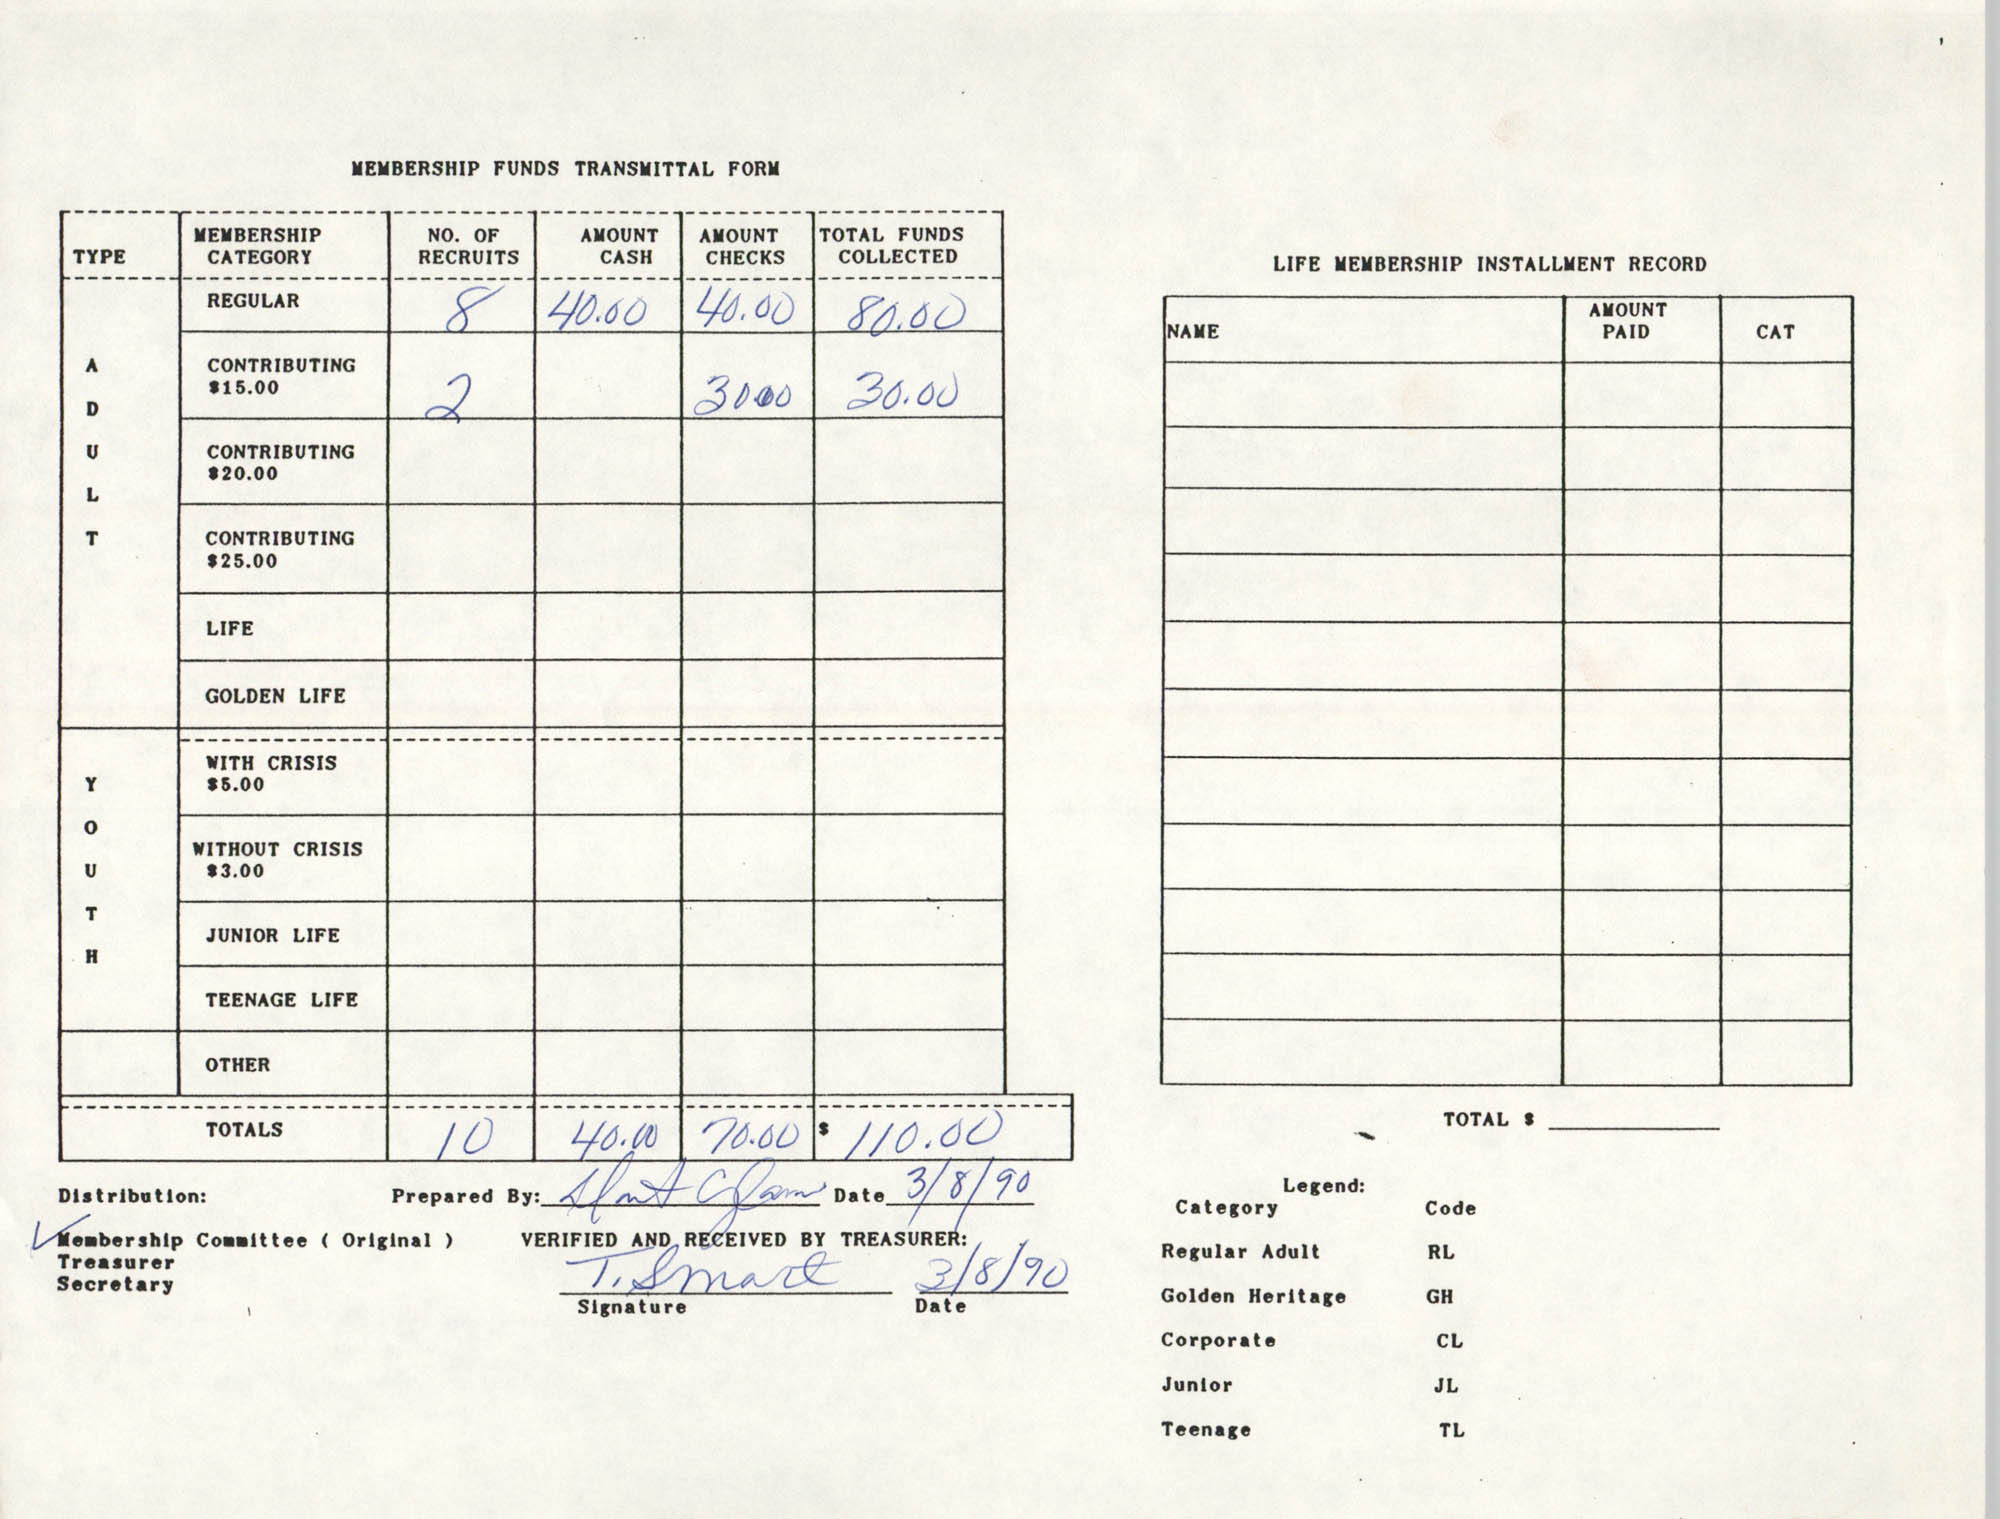 Charleston Branch of the NAACP Funds Transmittal Forms, March 1990, Page 2